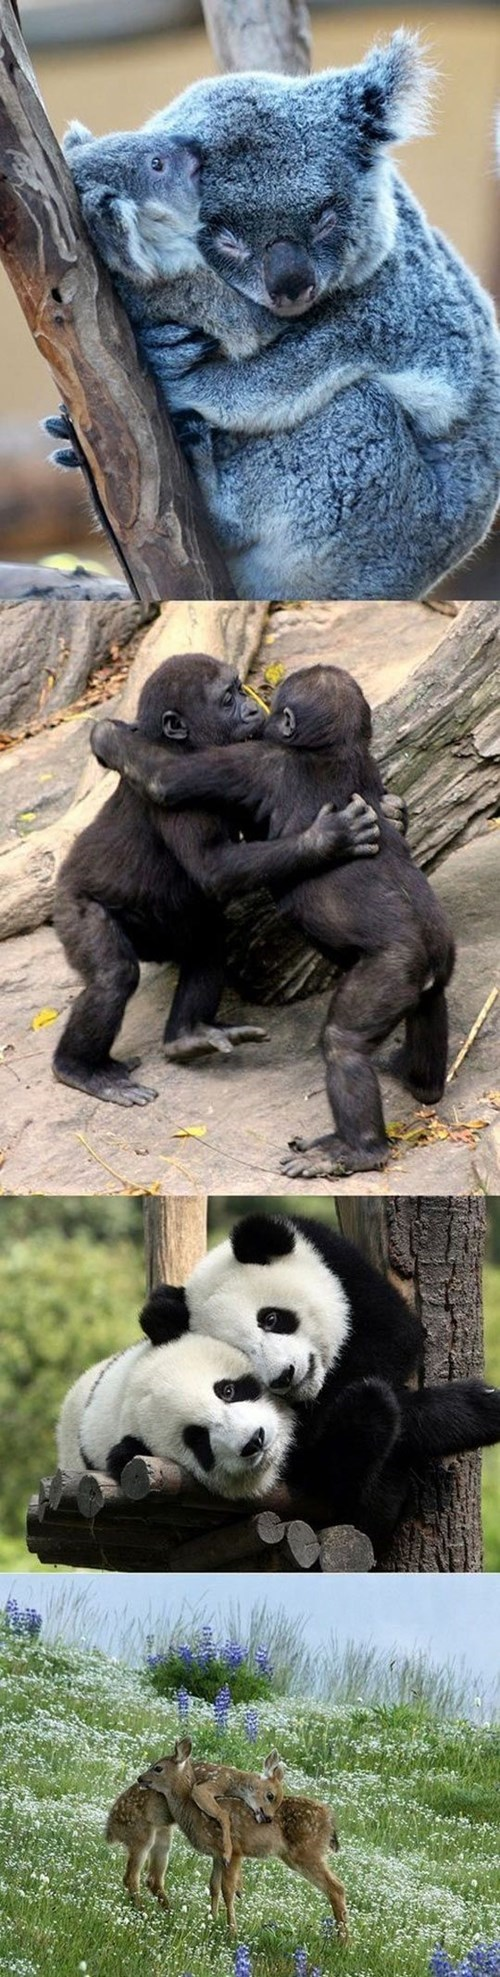 Hug it Out...It's Natural!